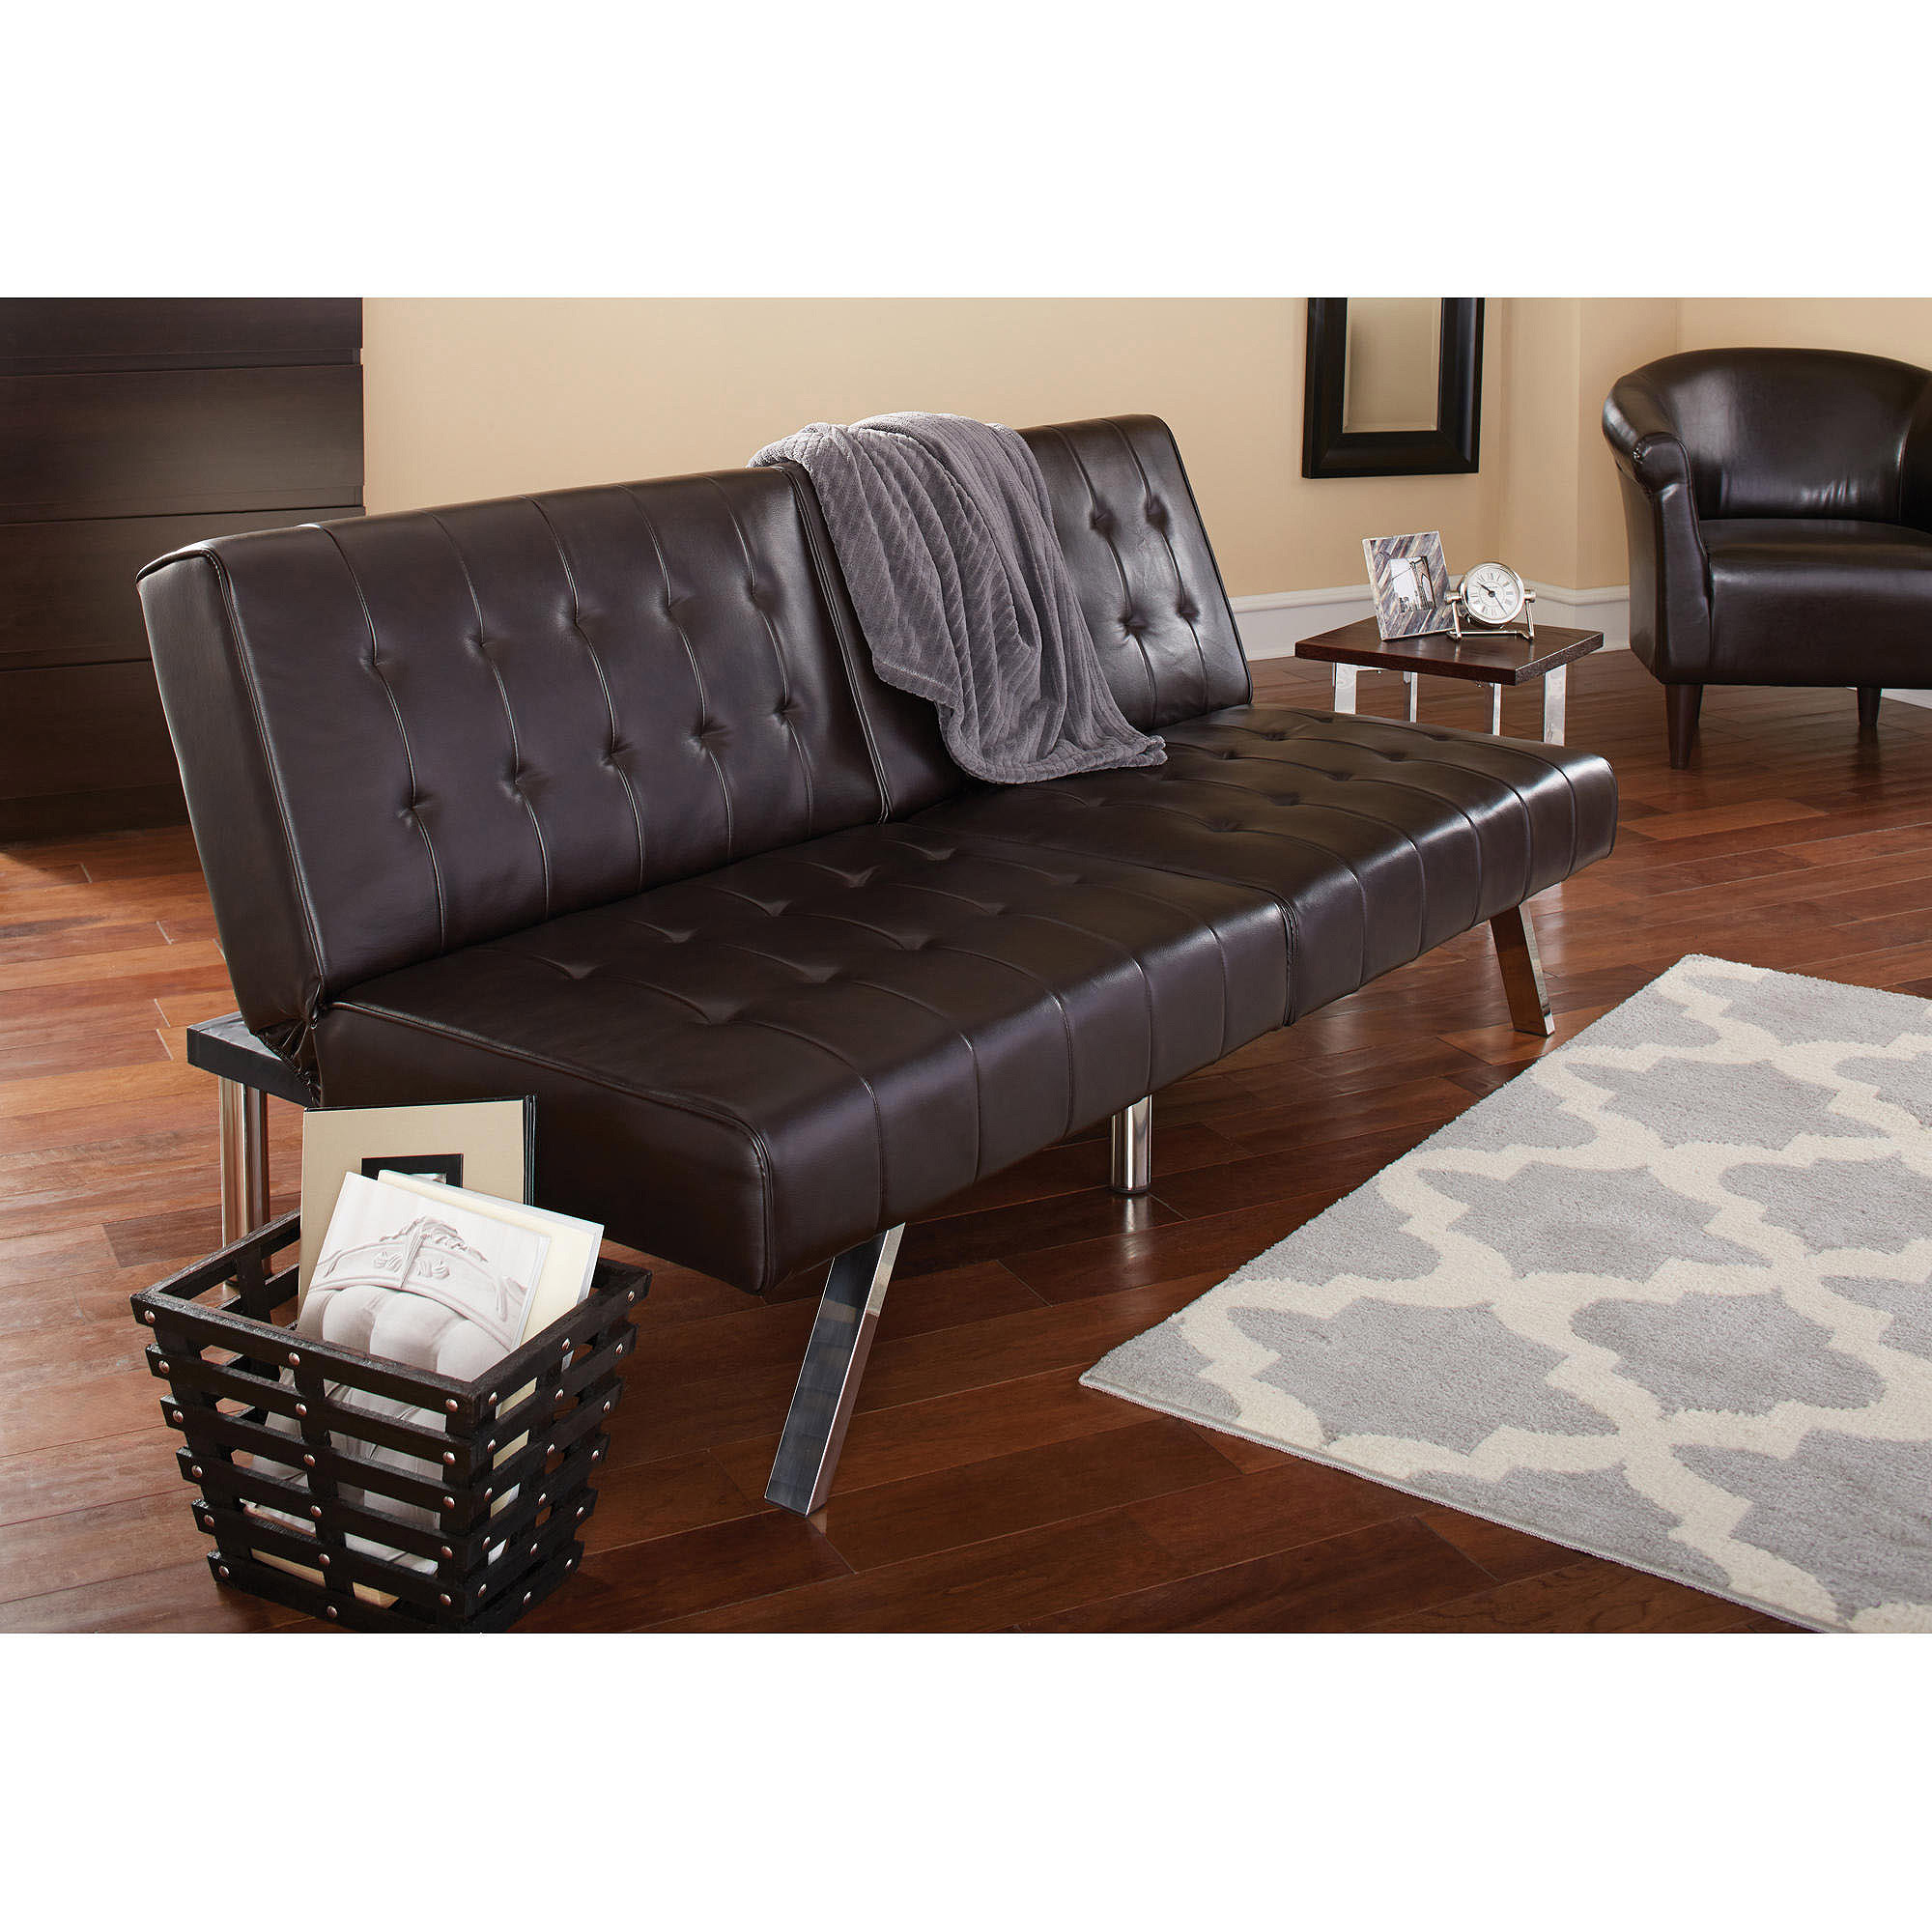 66 34 17 Cowan Sectional Sofa with Left Arm Facing Sofa